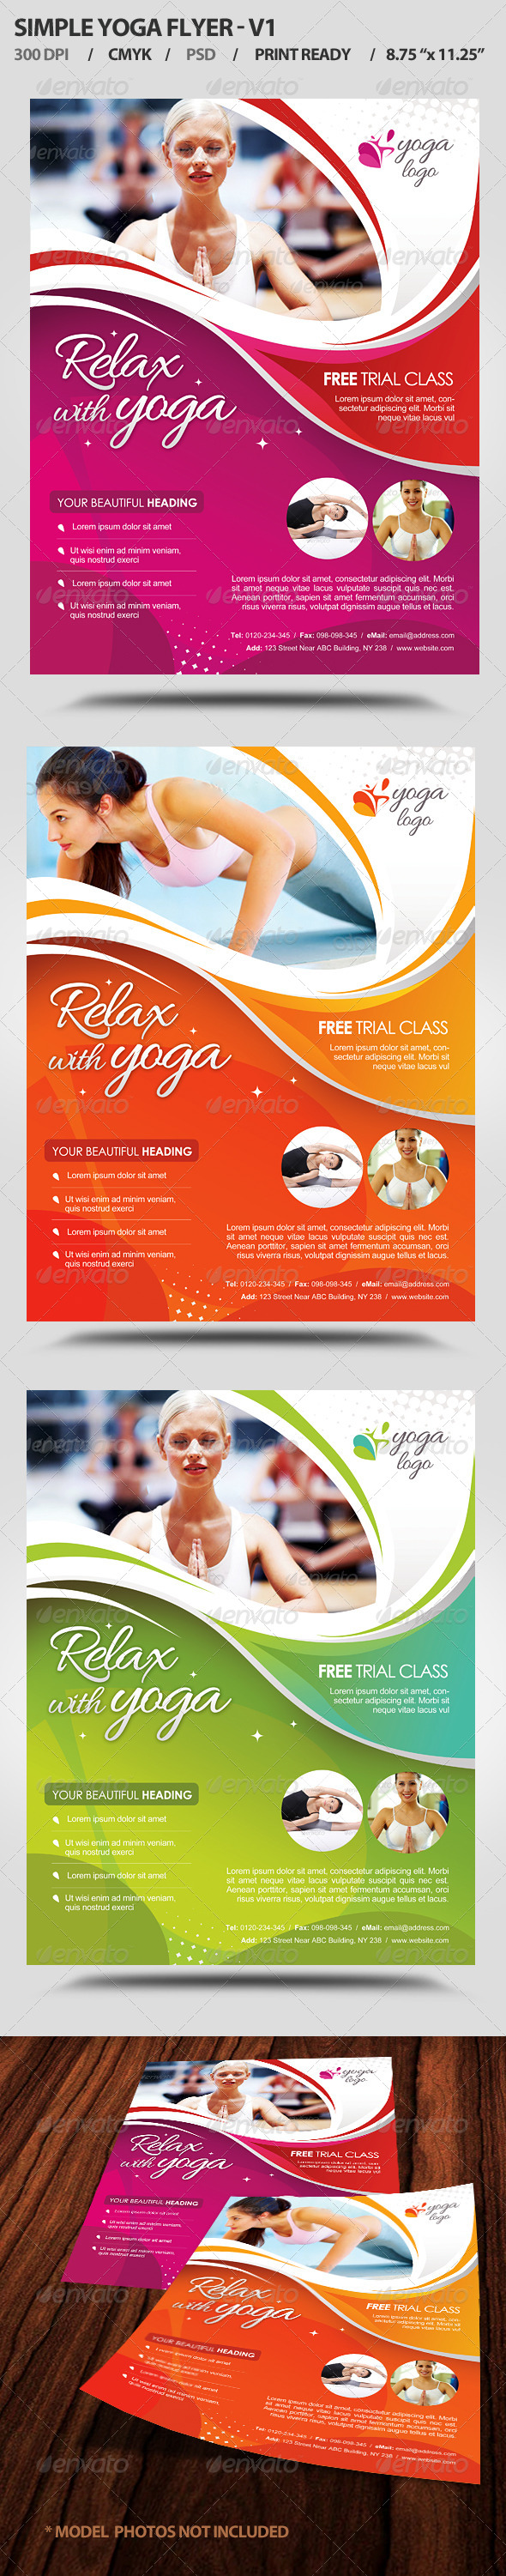 GraphicRiver Simple Yoga Flyer V1 4728444